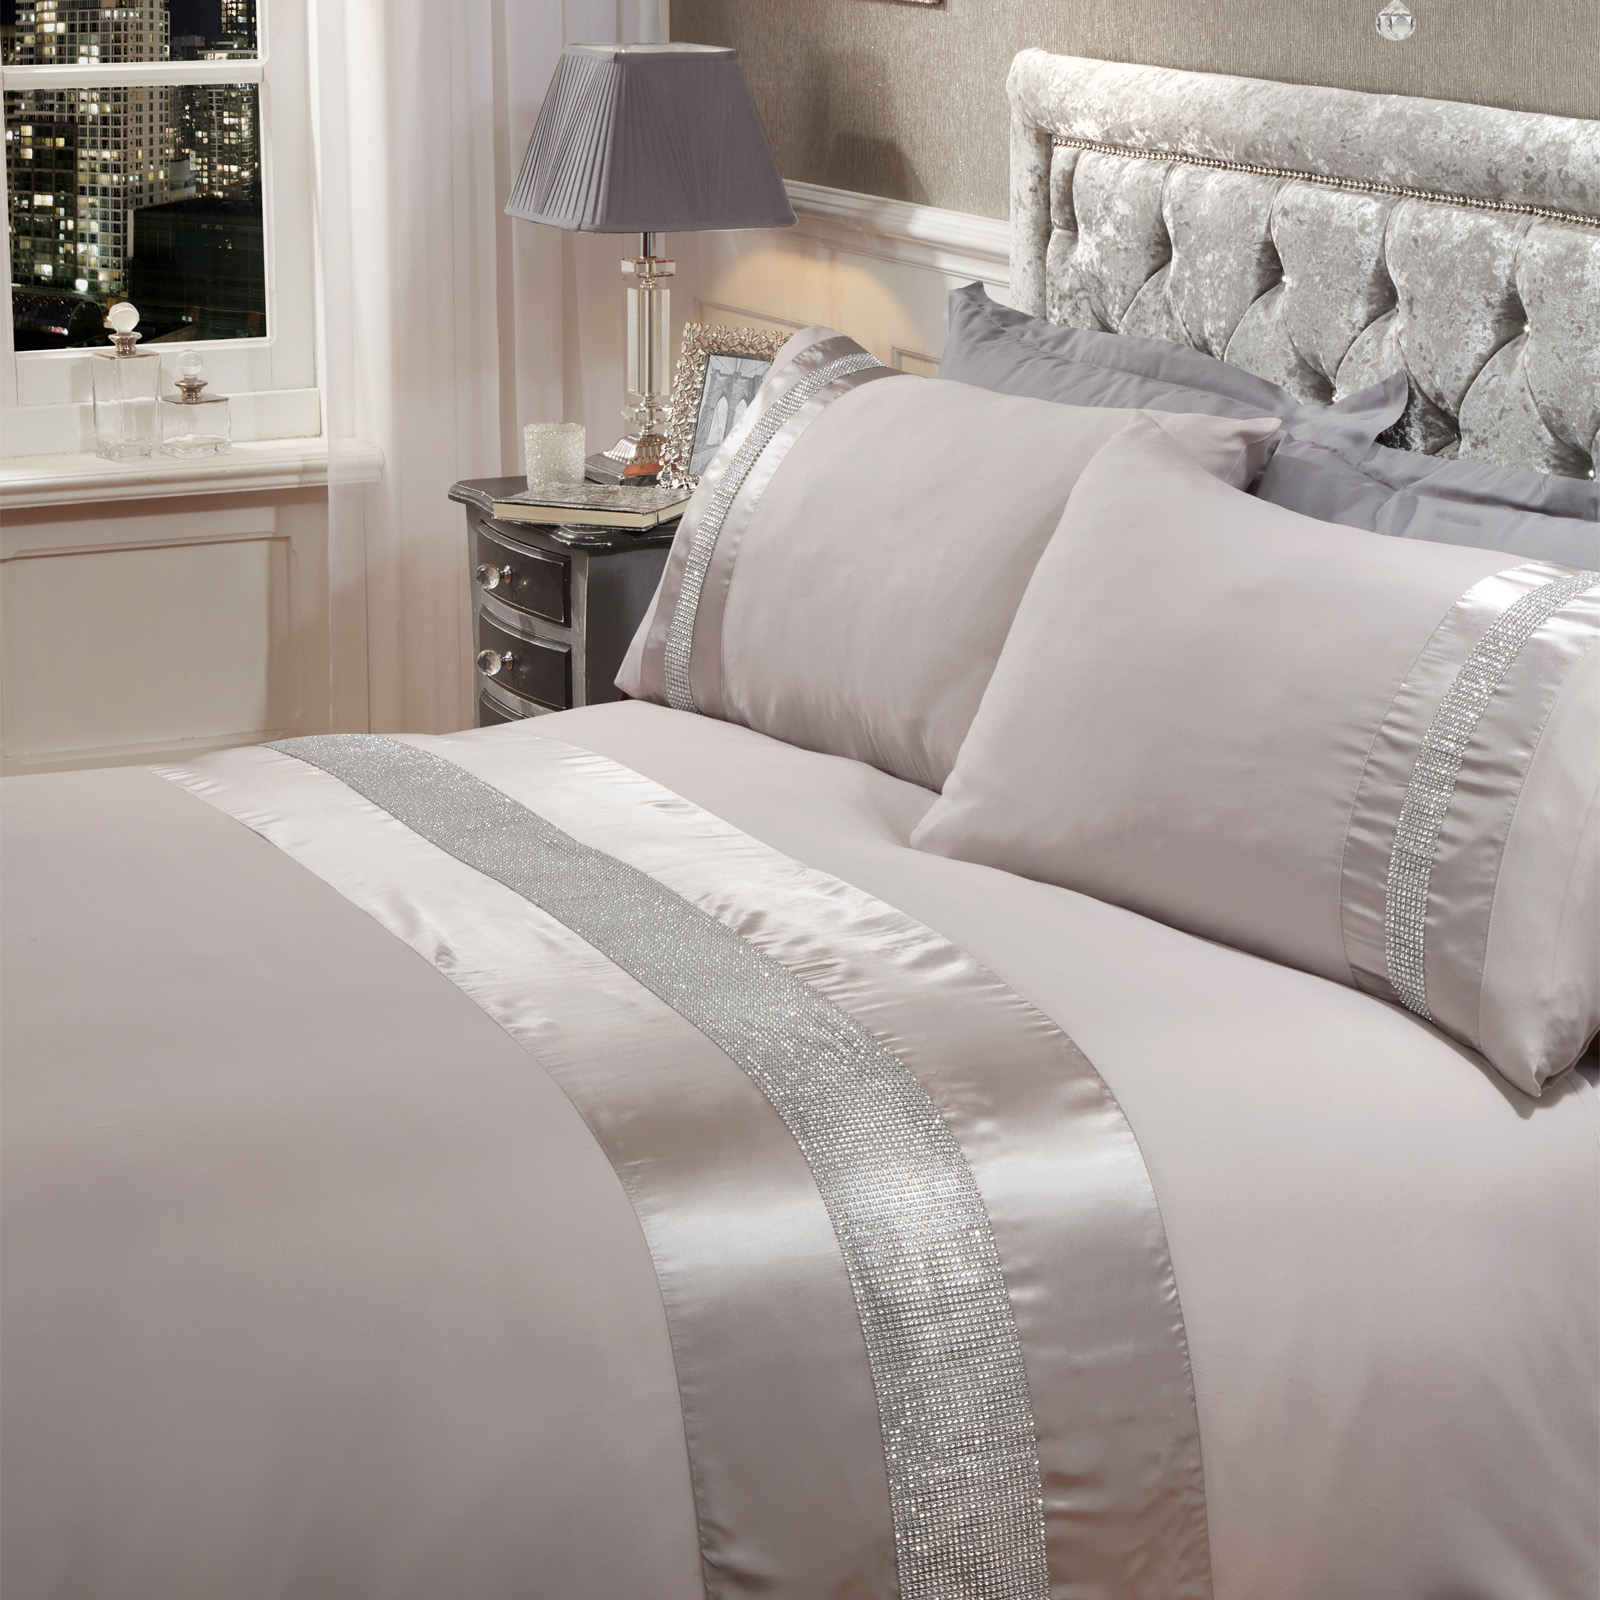 Sienna-Diamante-Glitz-Duvet-Cover-with-Pillowcase-Sparkle-Bedding-Set-Black-Grey